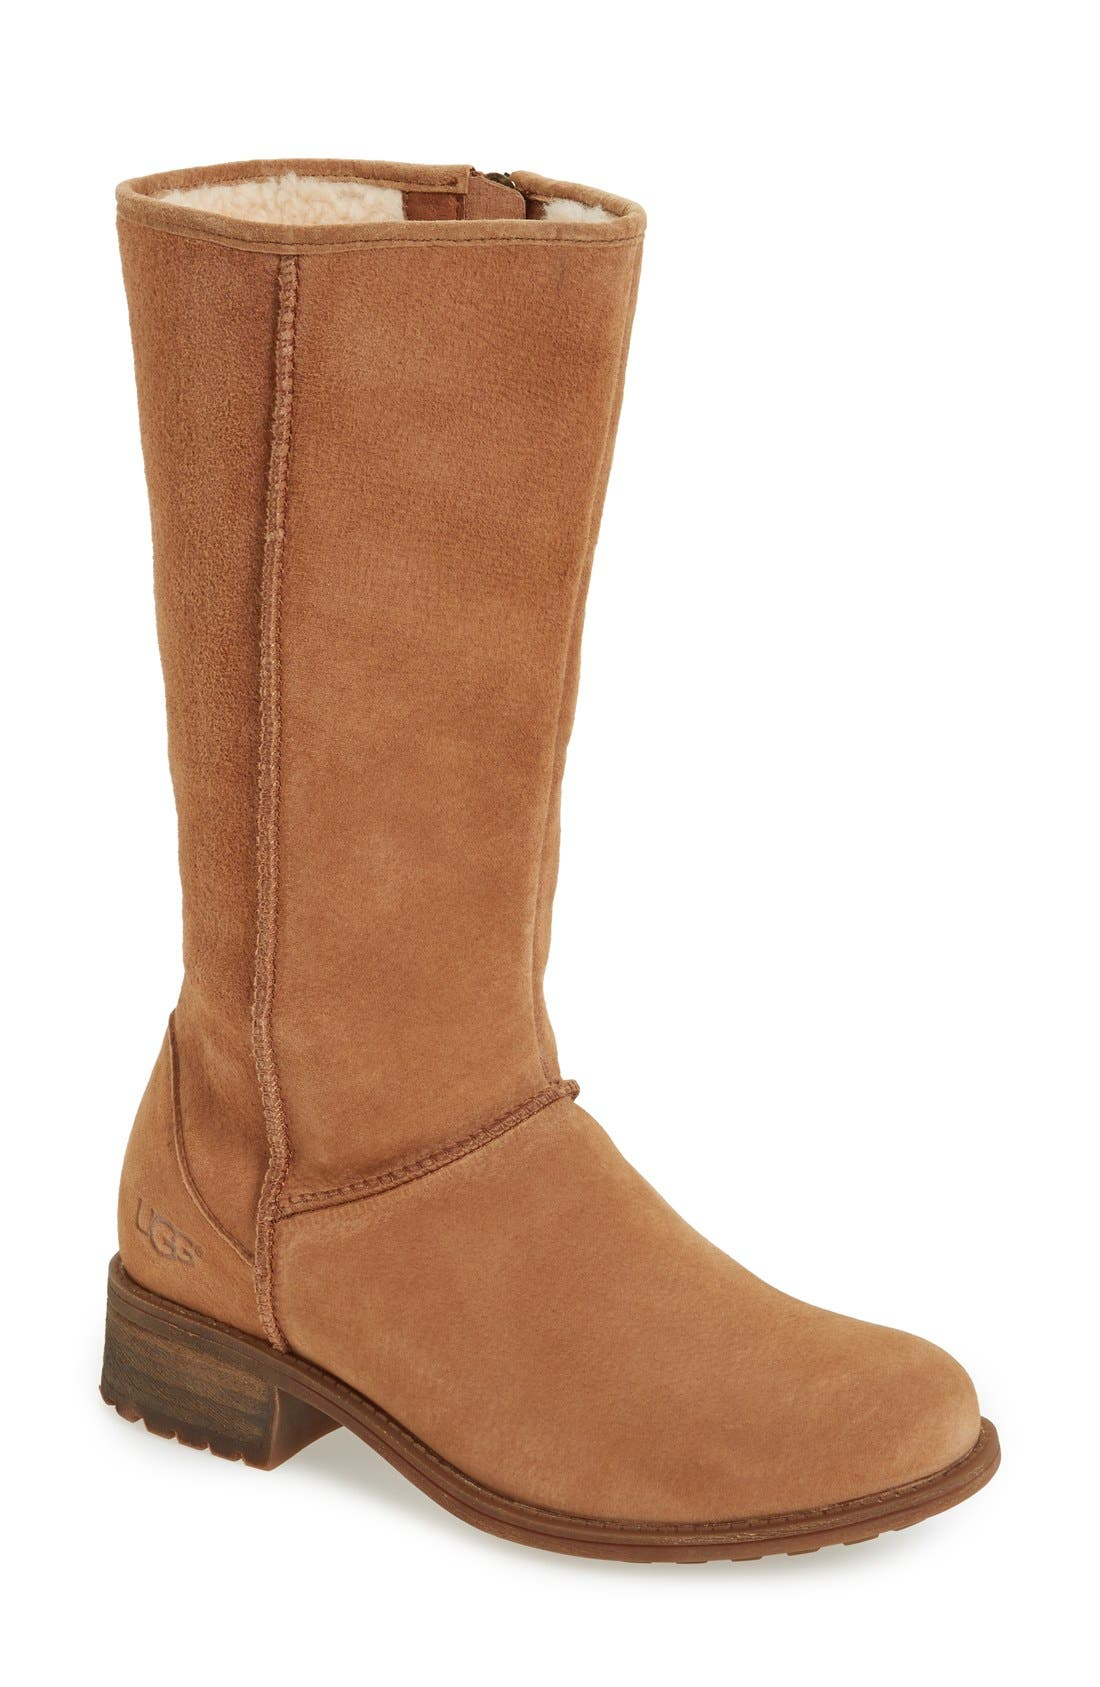 Alternate Image 1 Selected - UGG® Linford Boot (Women) (Wide Calf)